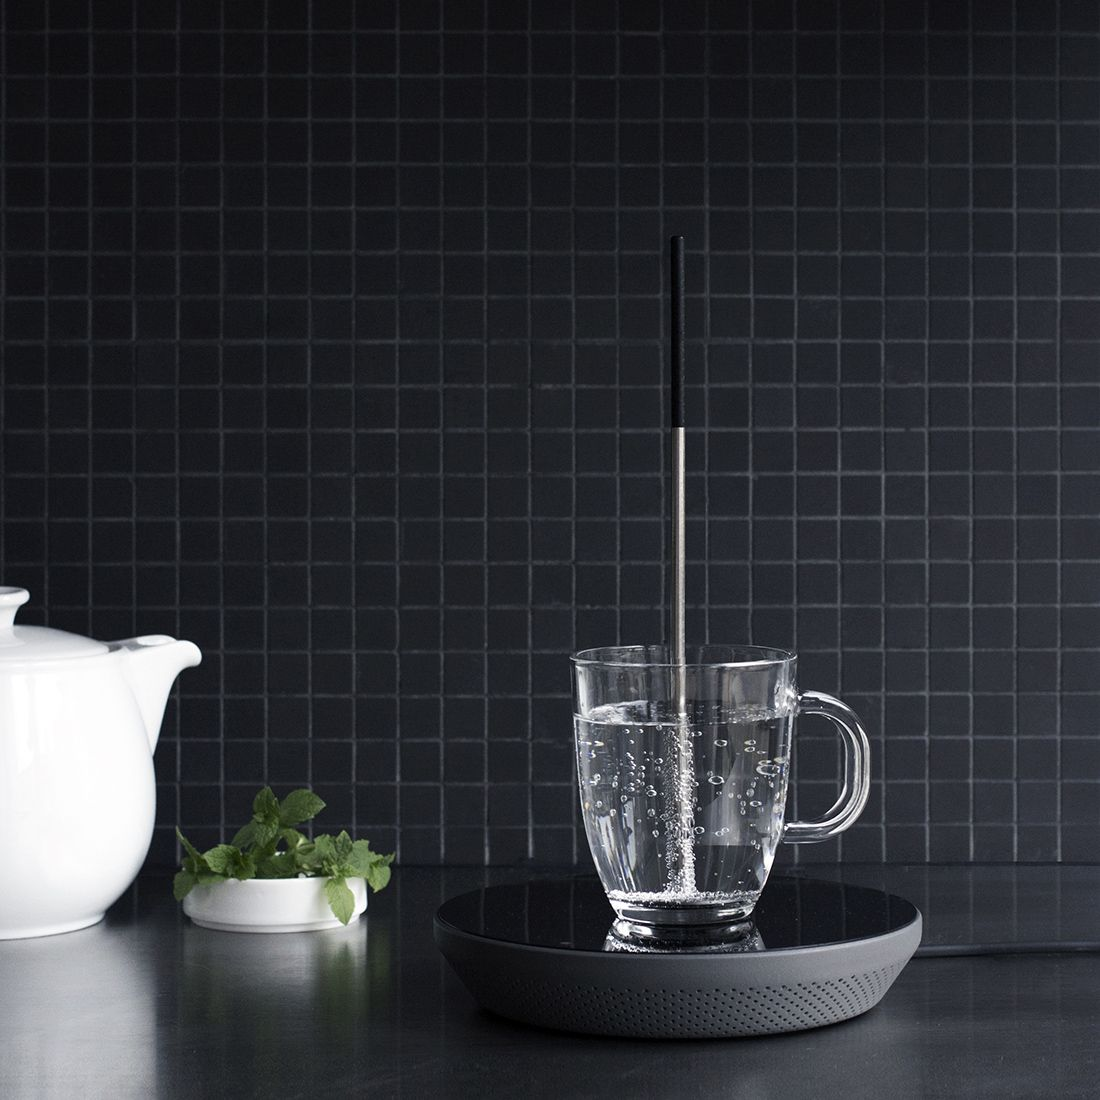 "<div>With <a href=""http://miito.de/"">Miito</a>, there's no need to heat up excess water: Just immerse the rod in water, using whatever cup you have available, and place it on the induction base. Hot liquid! The rod can also be used to reheat your coffee or soup. </div>"